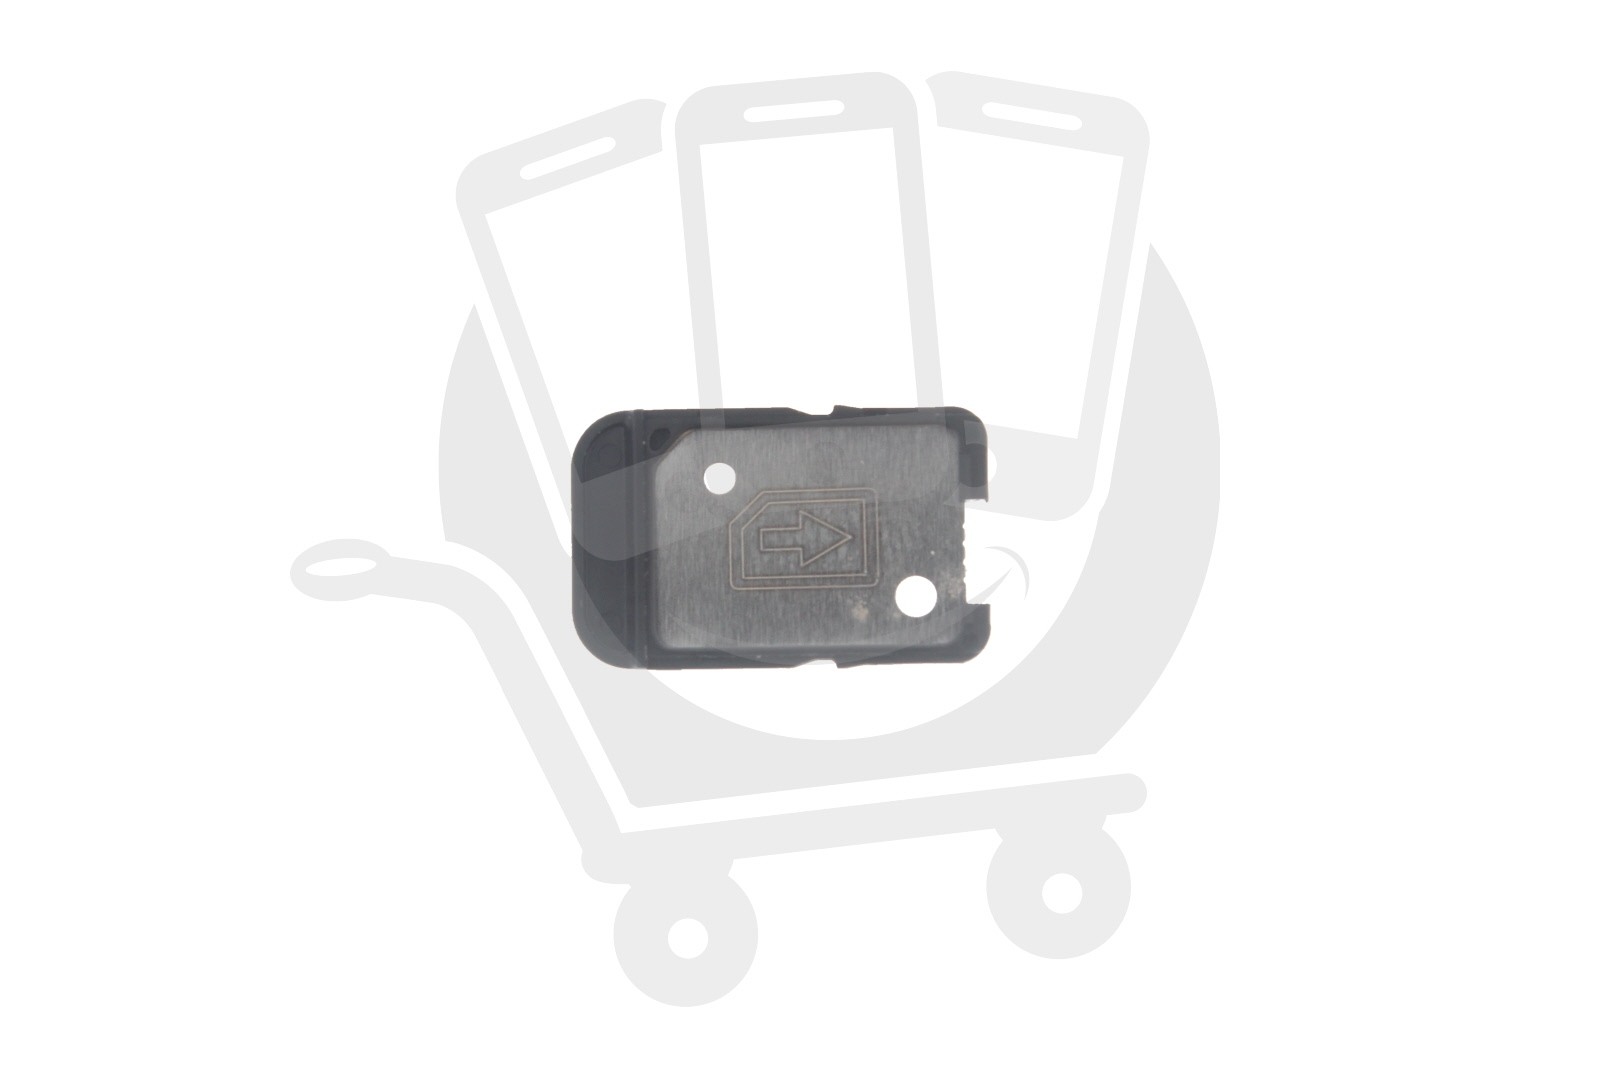 Details about Genuine Sony Xperia L1 G3311, L1 G3313 Sim Tray / Holder -  A-415-58870-0001